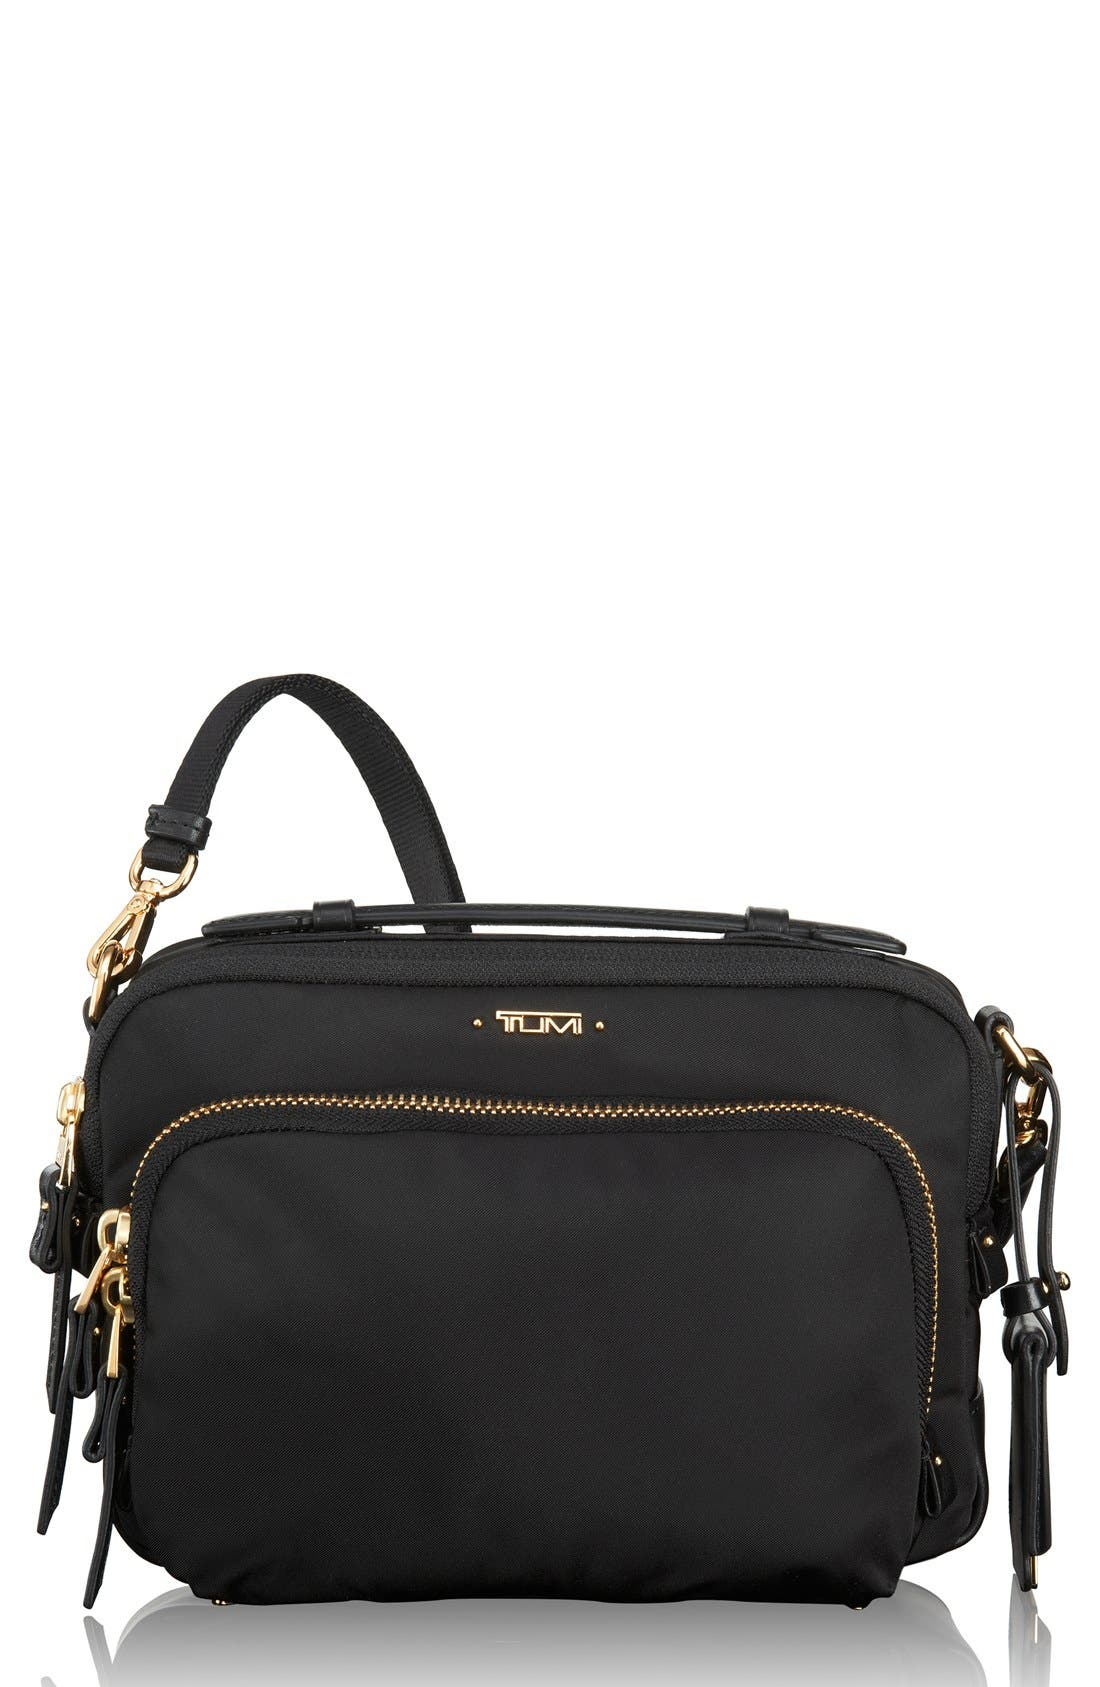 Tumi 'Luanda' Crossbody Flight Bag